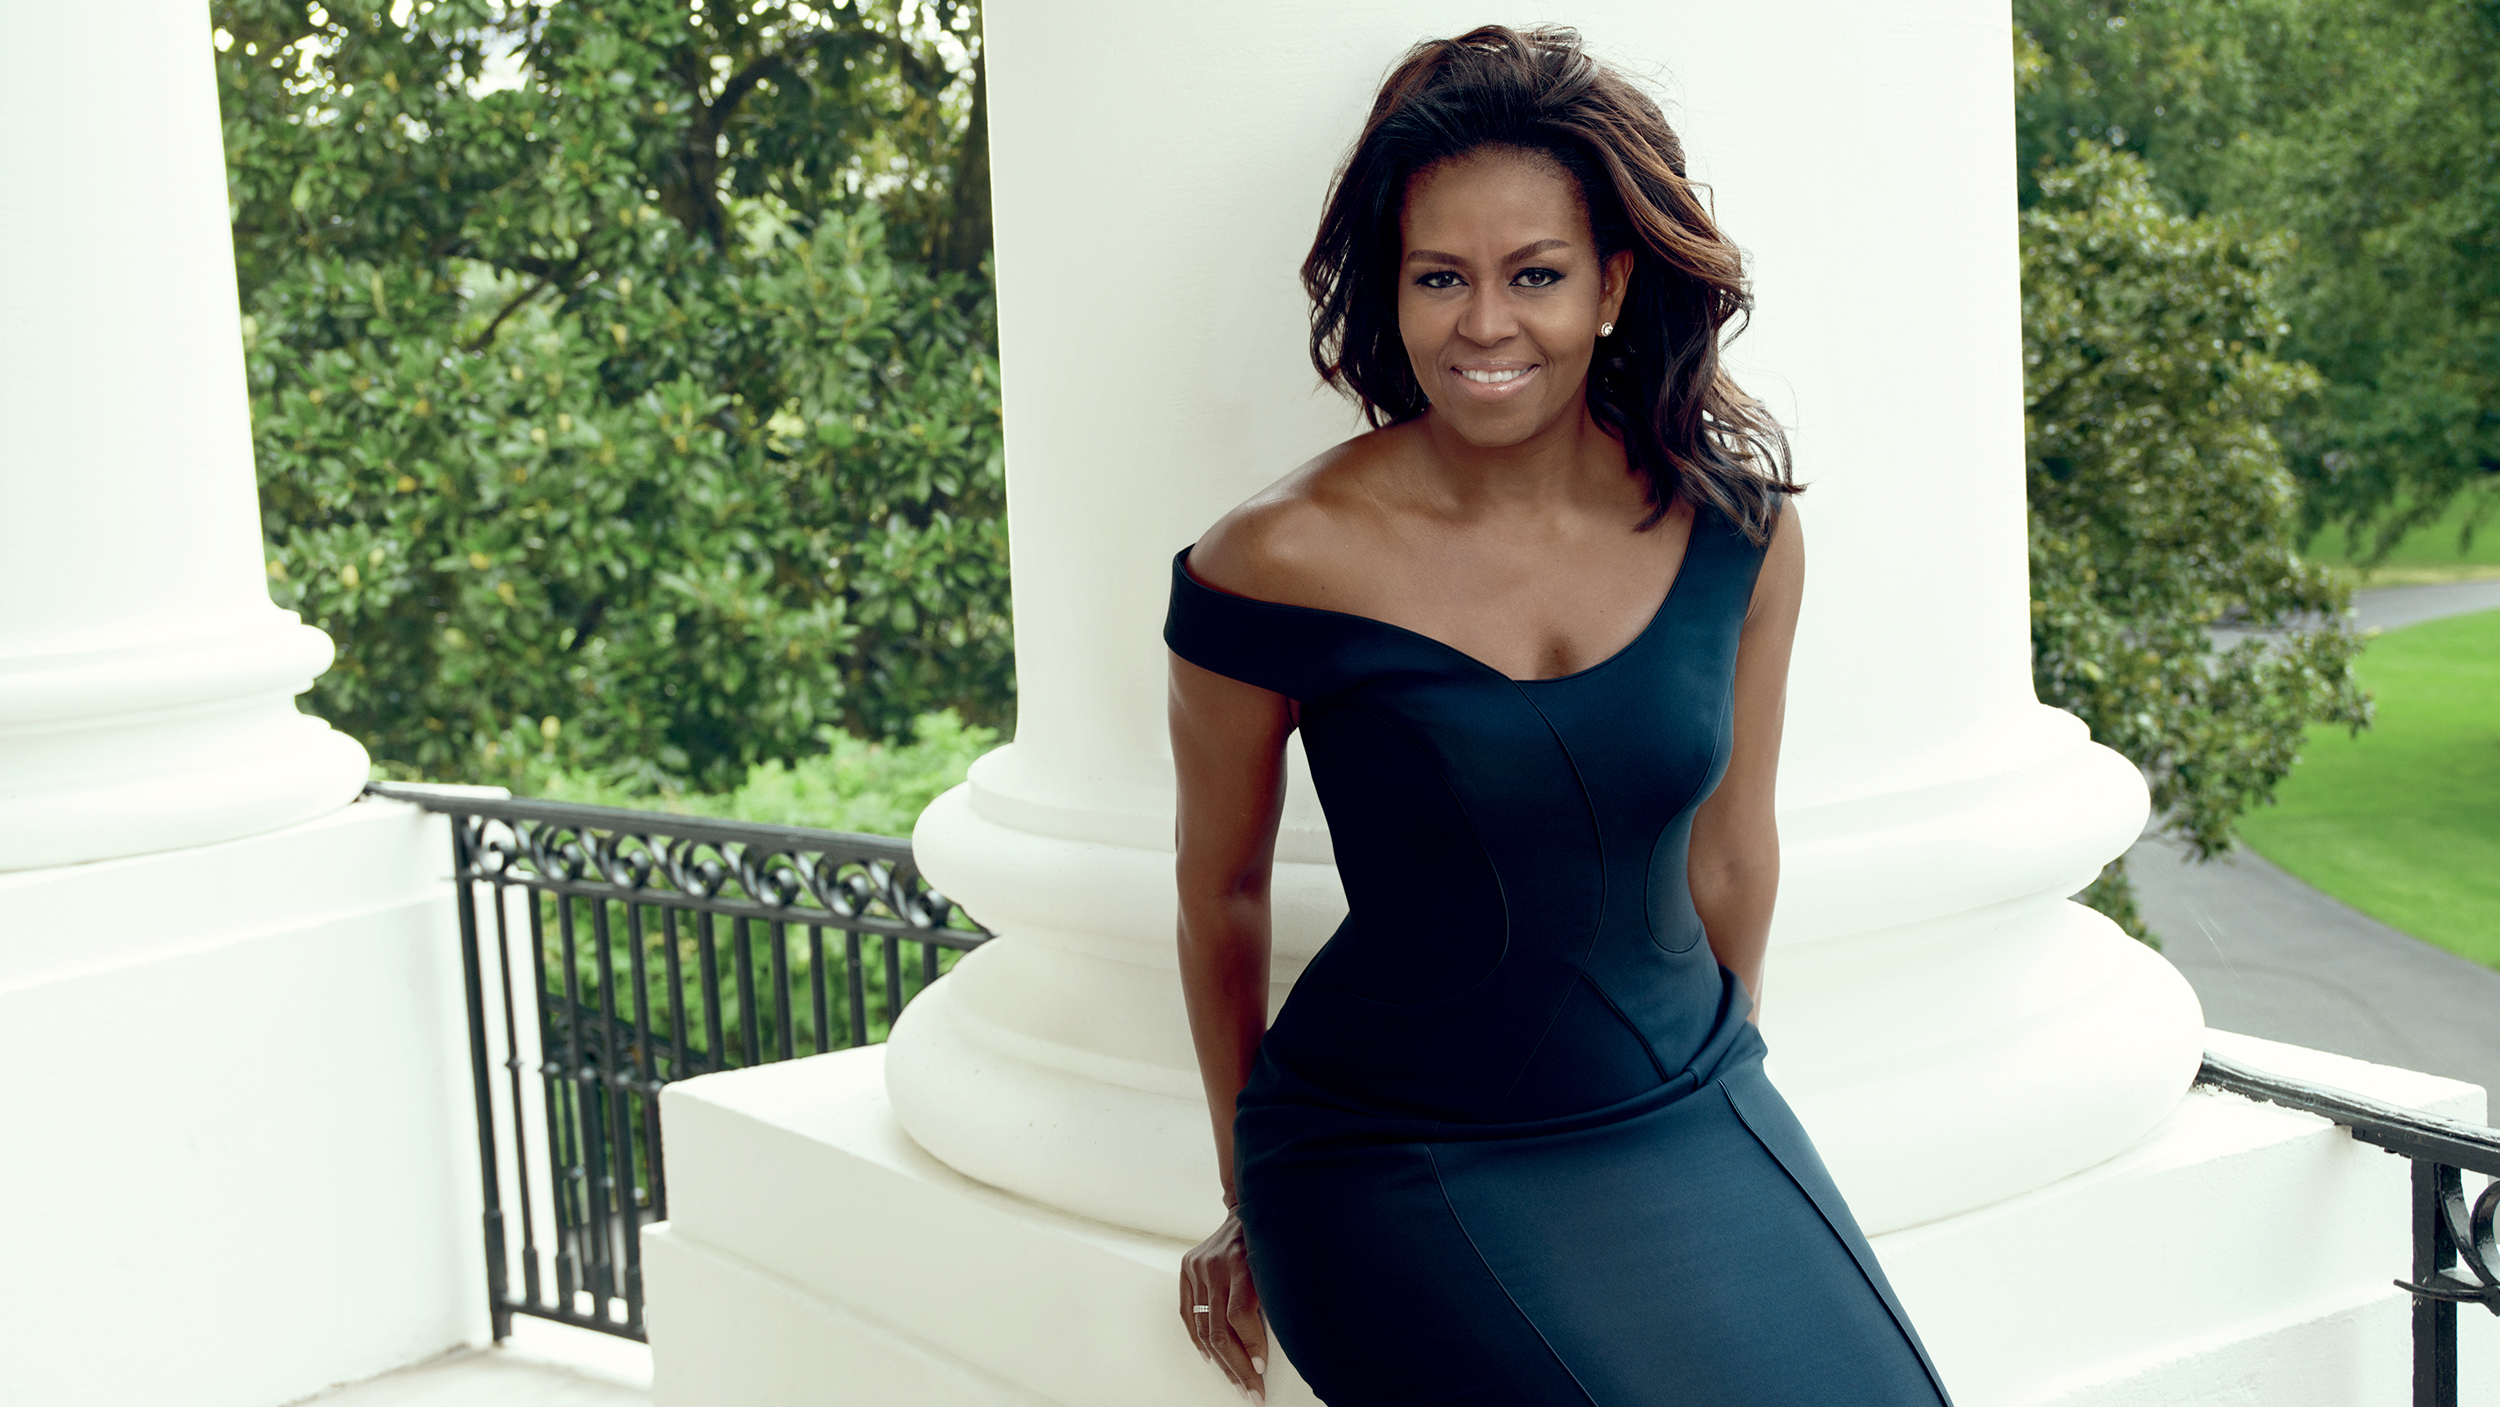 Look come at michelle obamas vogue cover pictures